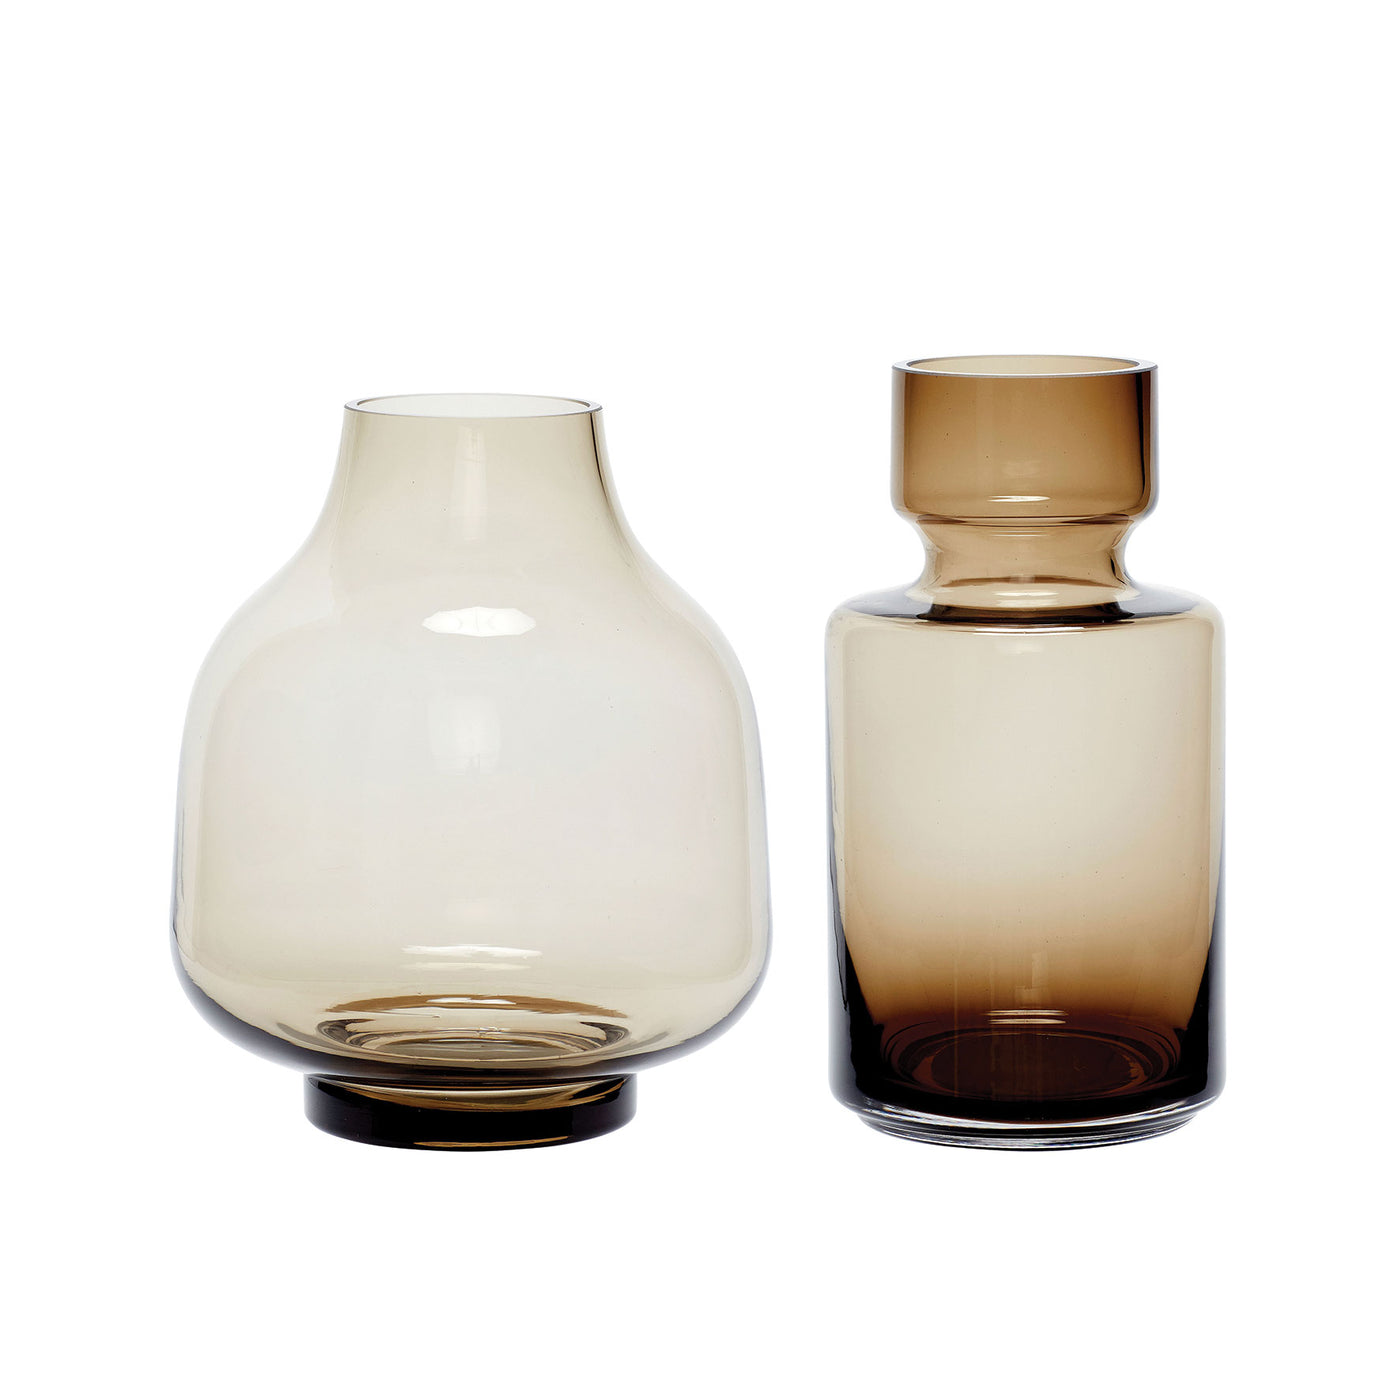 Amber Glass Vases · Set of 2